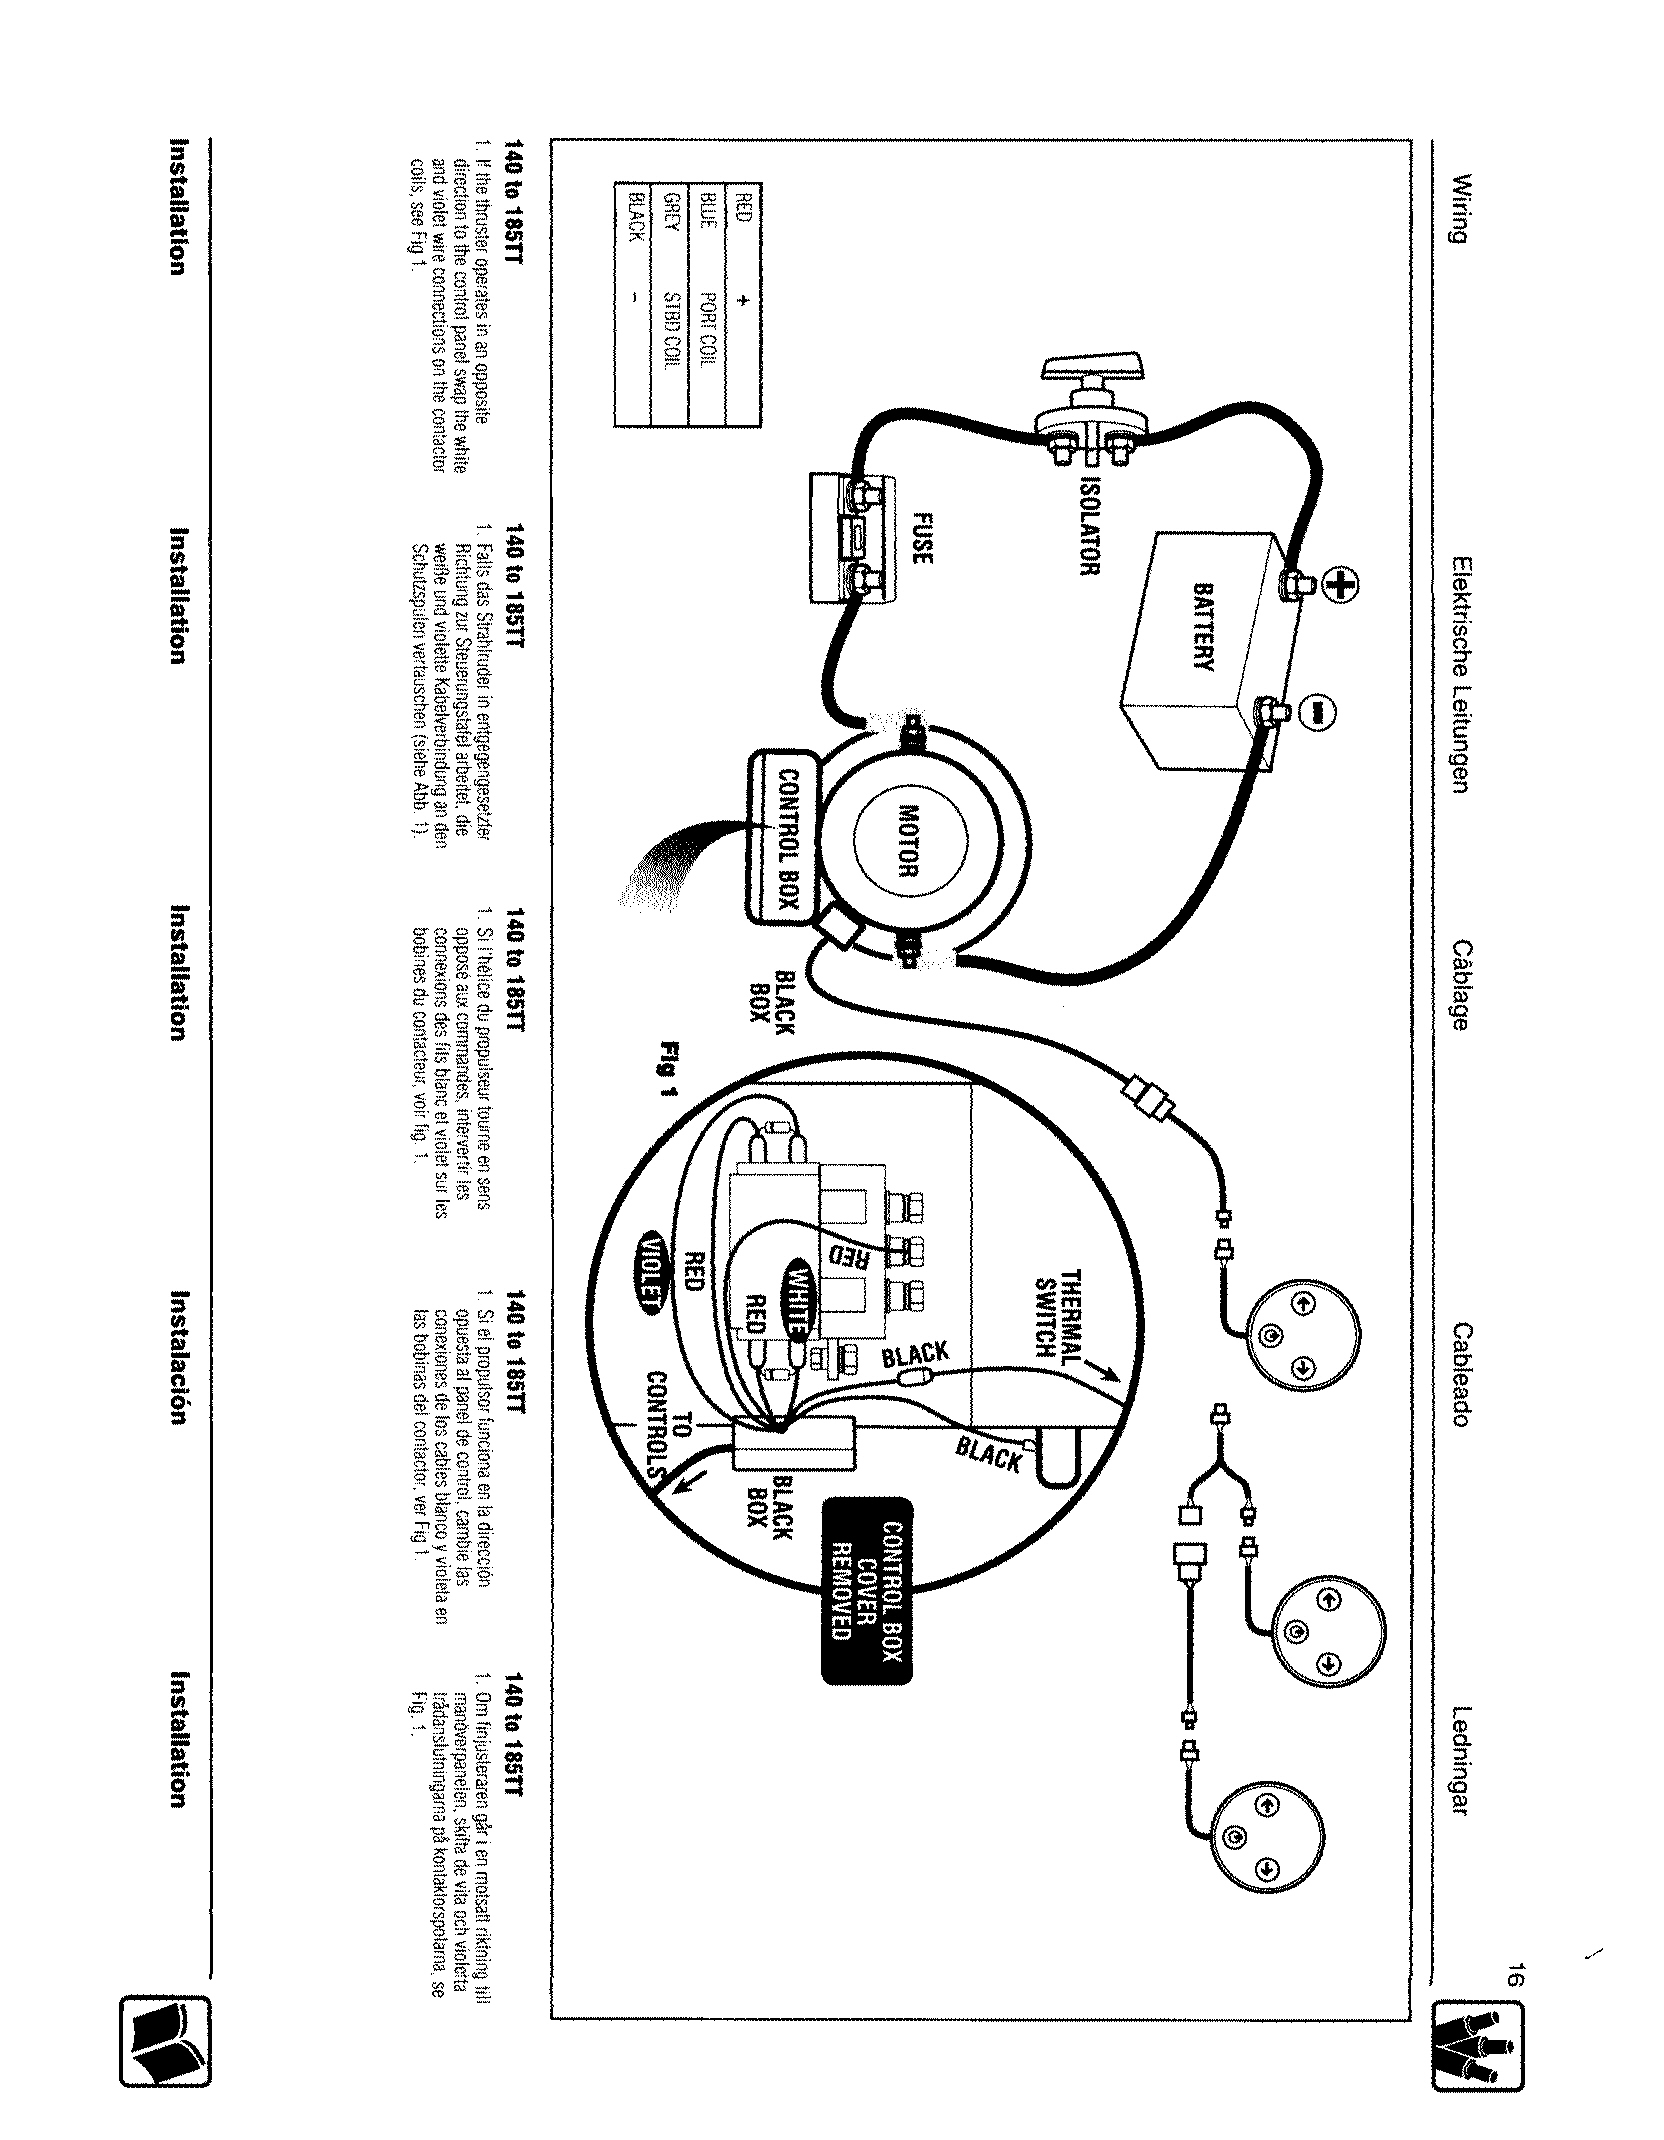 Western star 4900 fuse box diagram electric water heater element on toyota airbag wiring diagram for